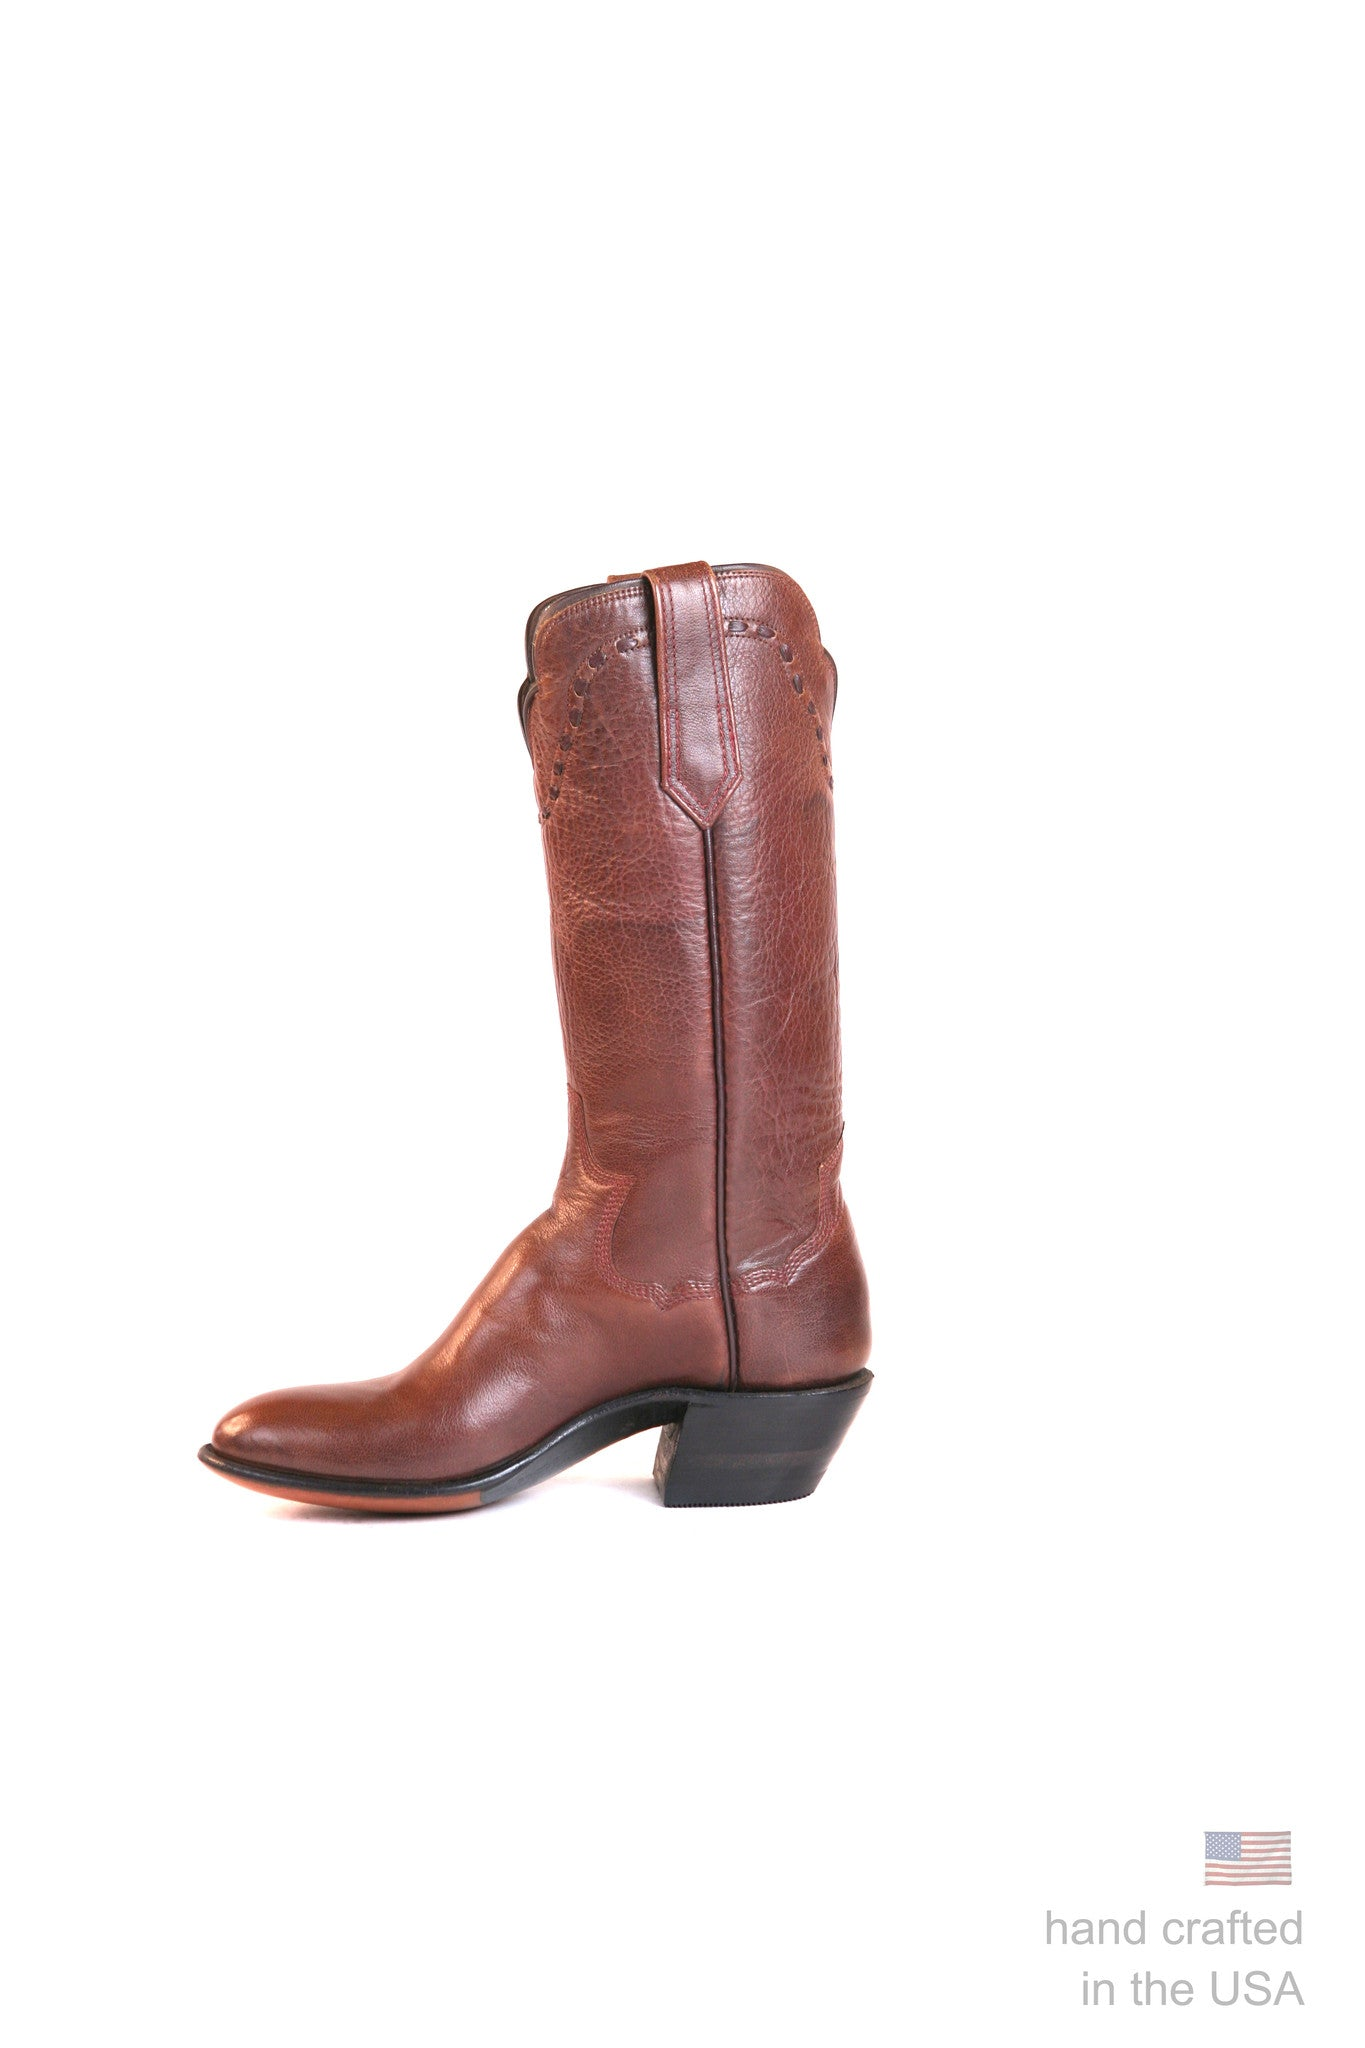 Singles: Boot 0012: Size 4A